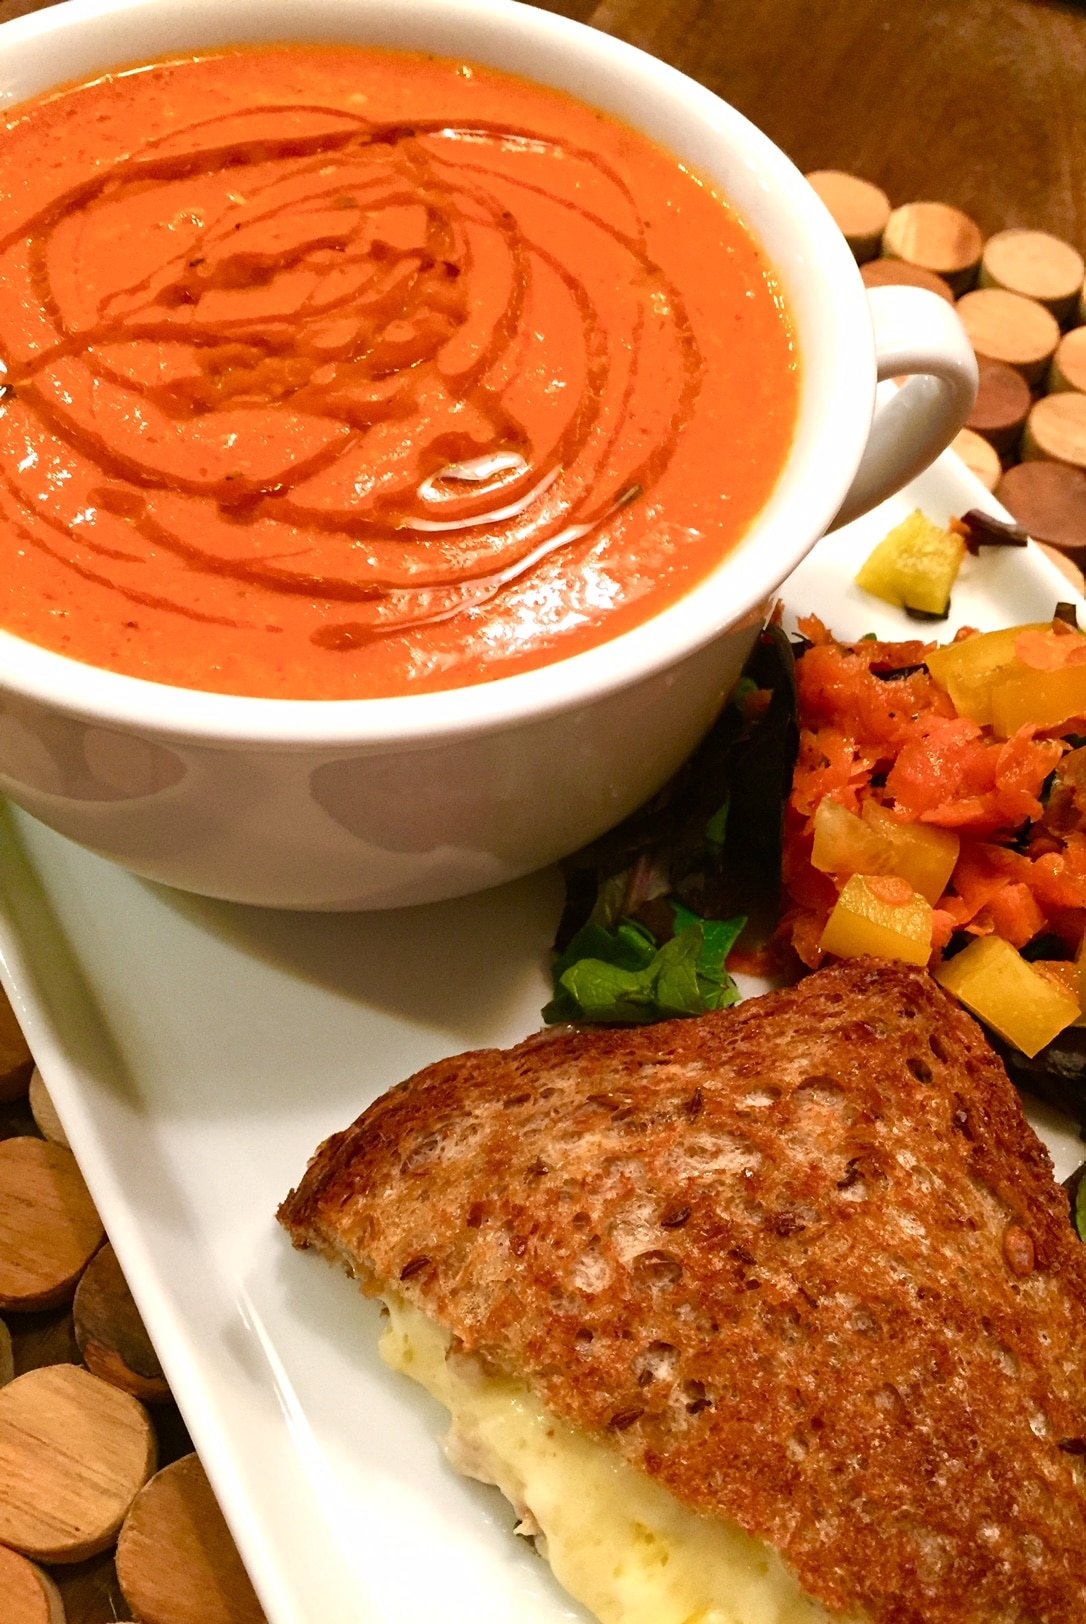 Roasted Tomato Soup with grilled cheese and salad